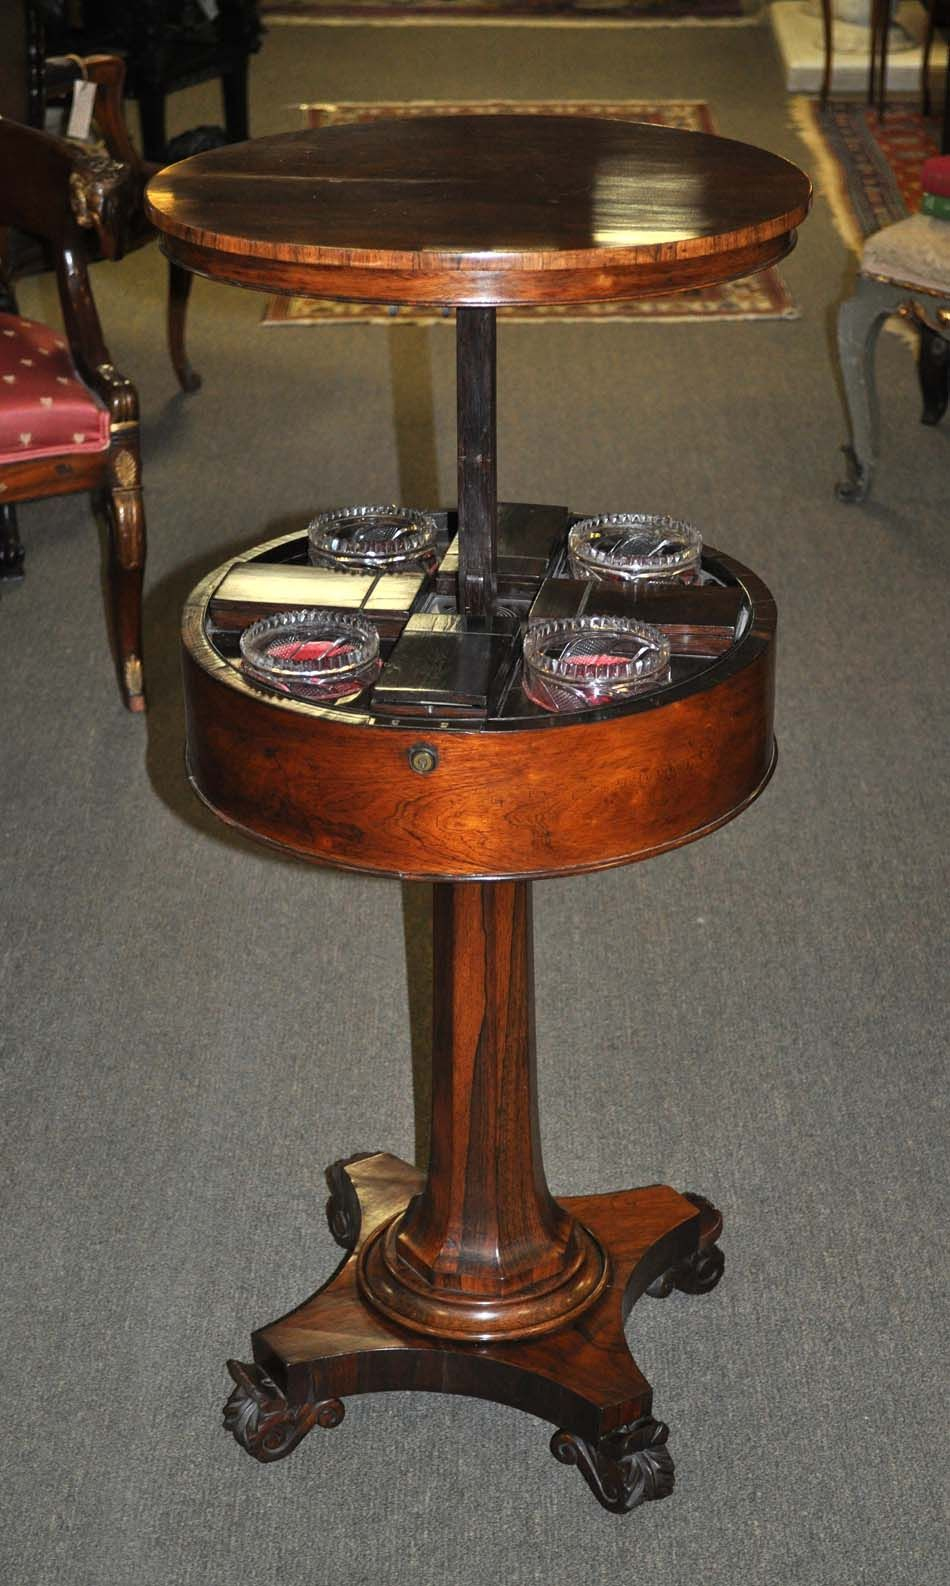 Charmant English Regency Rosewood Rising Top Teapoy Tea Caddy C. 1820 | Olde Mobile  Antiques Gallery U2013 Mobile, AL